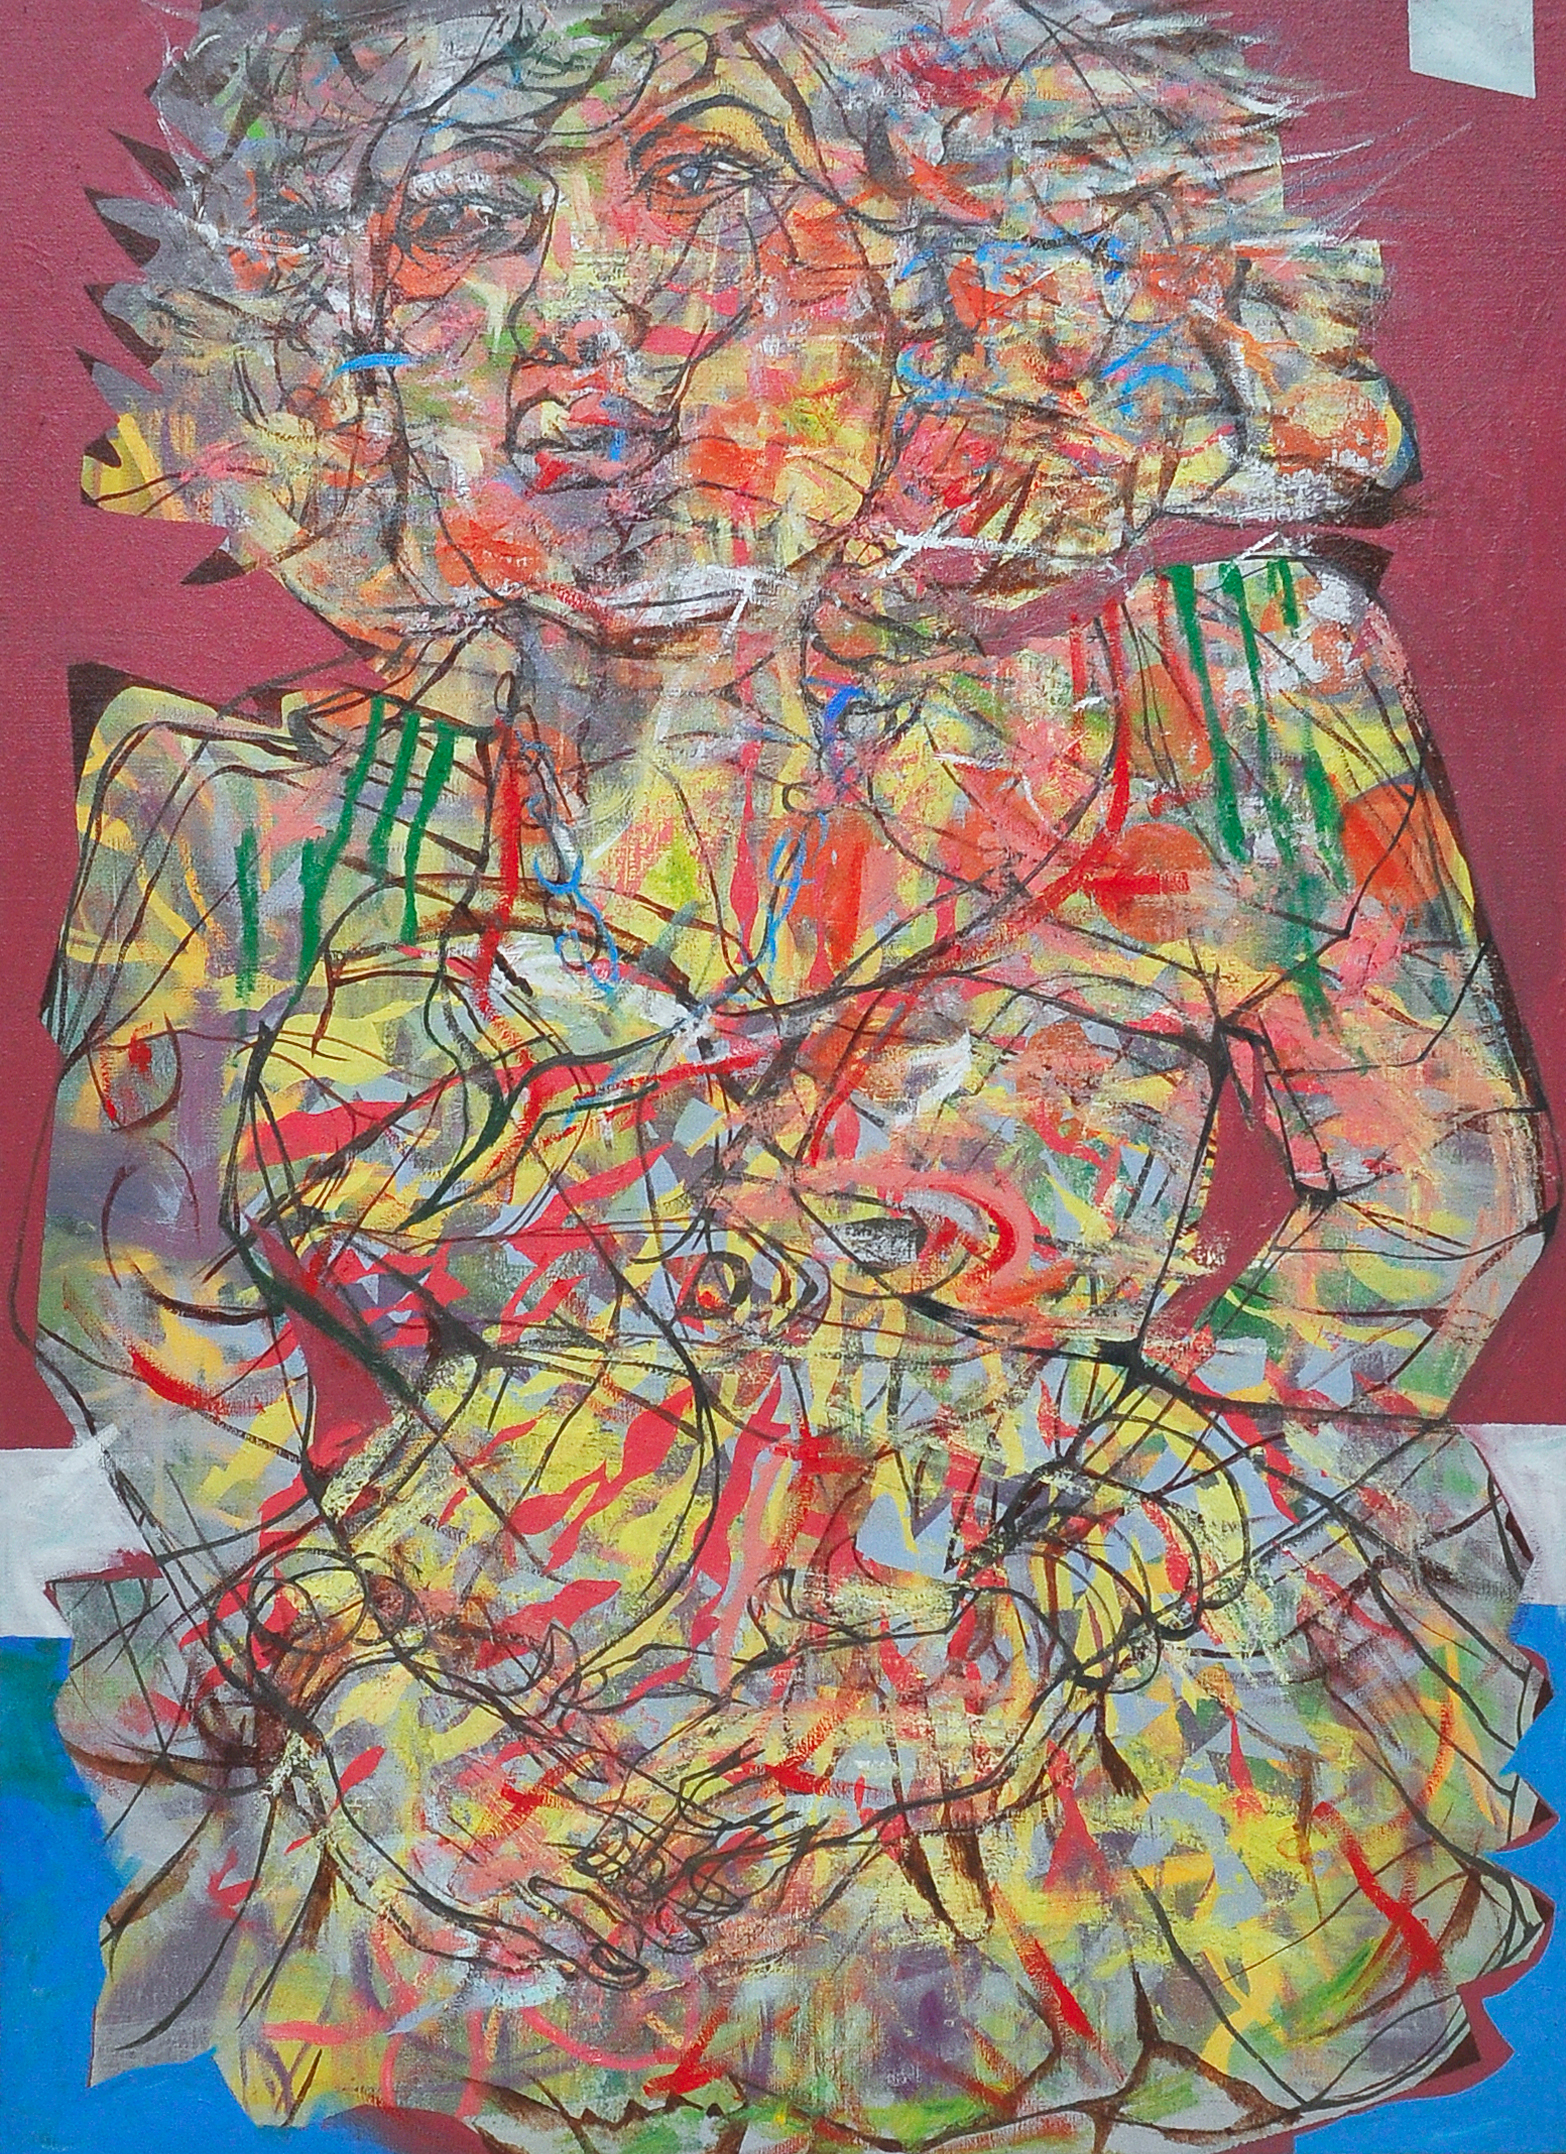 Yau Bee Ling, Great Mane, Oil on canvas, 140cm x 102cm, 2013